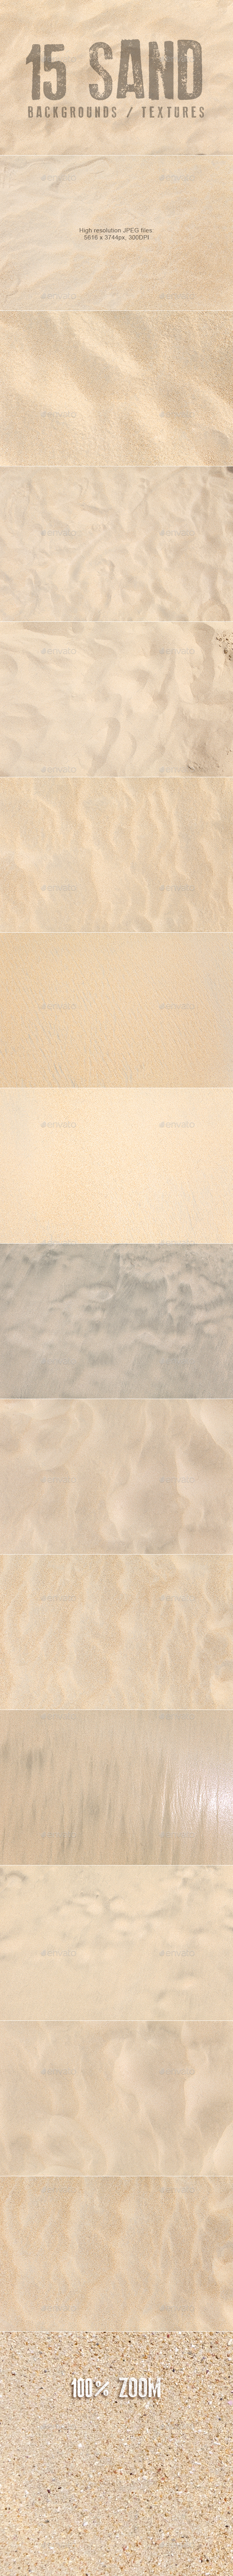 15 Sand Backgrounds / Textures - Nature Textures